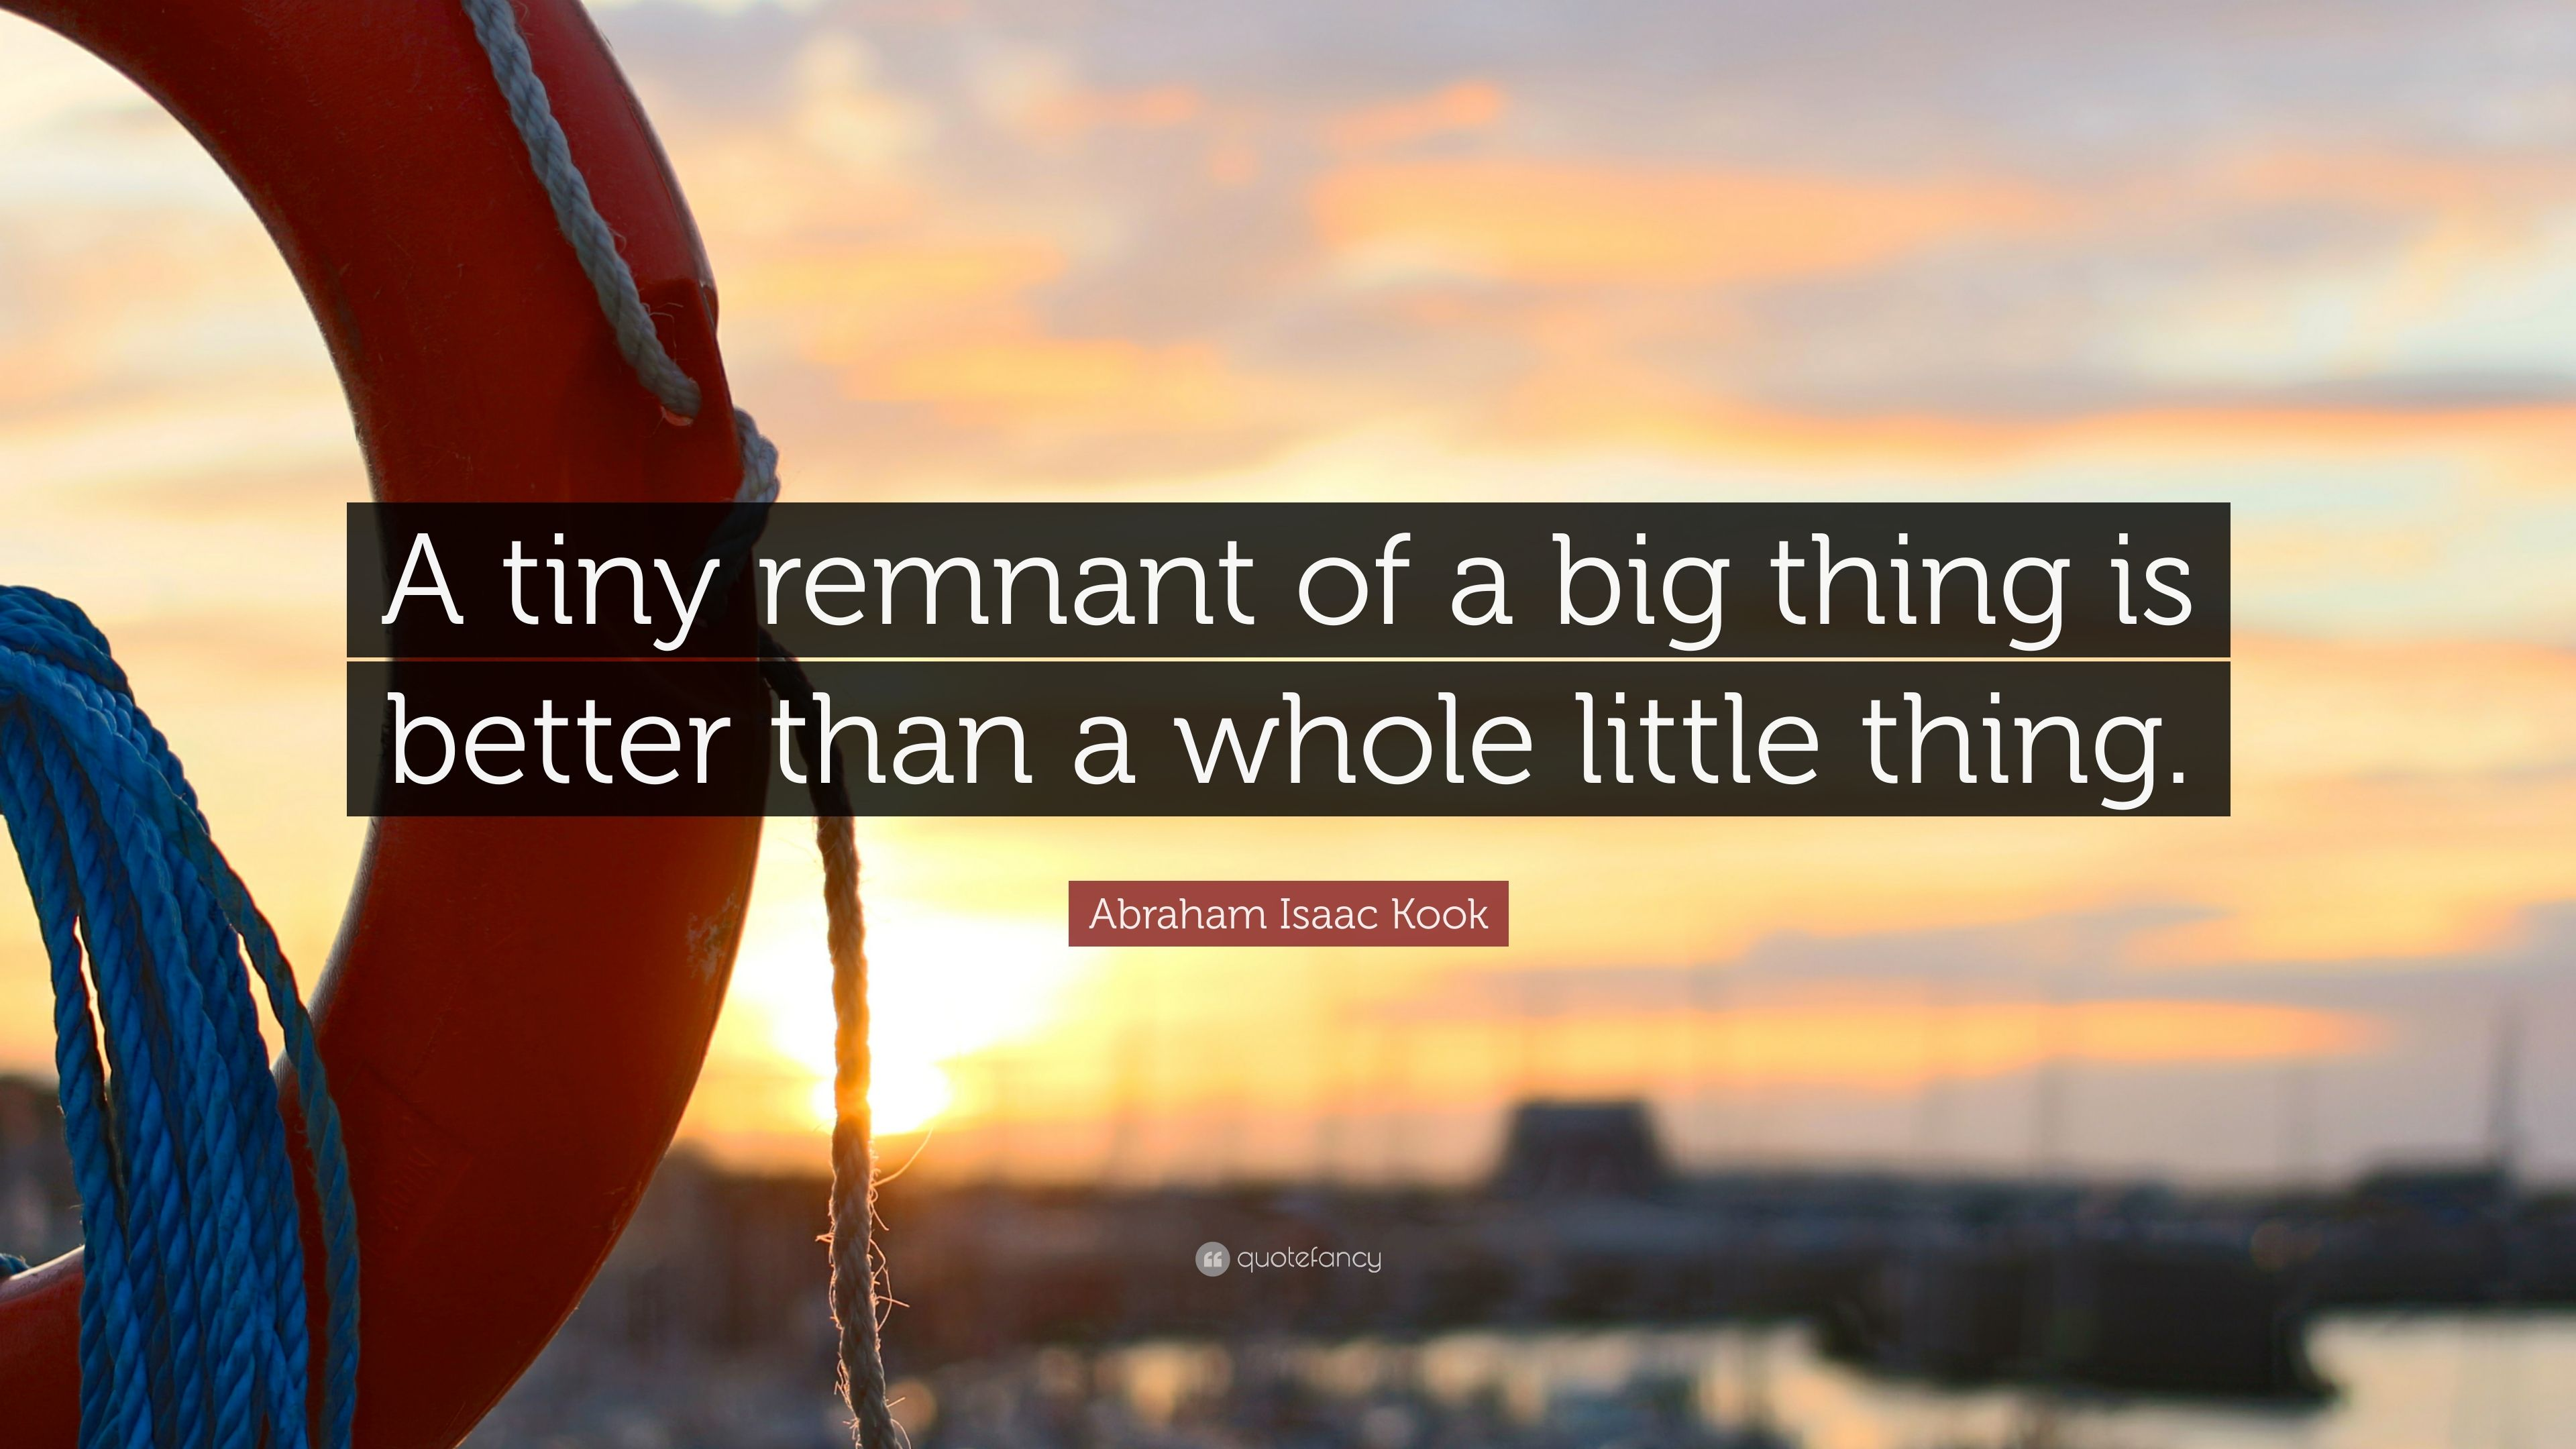 A little thing is better than big idleness: the meaning of the proverb 90